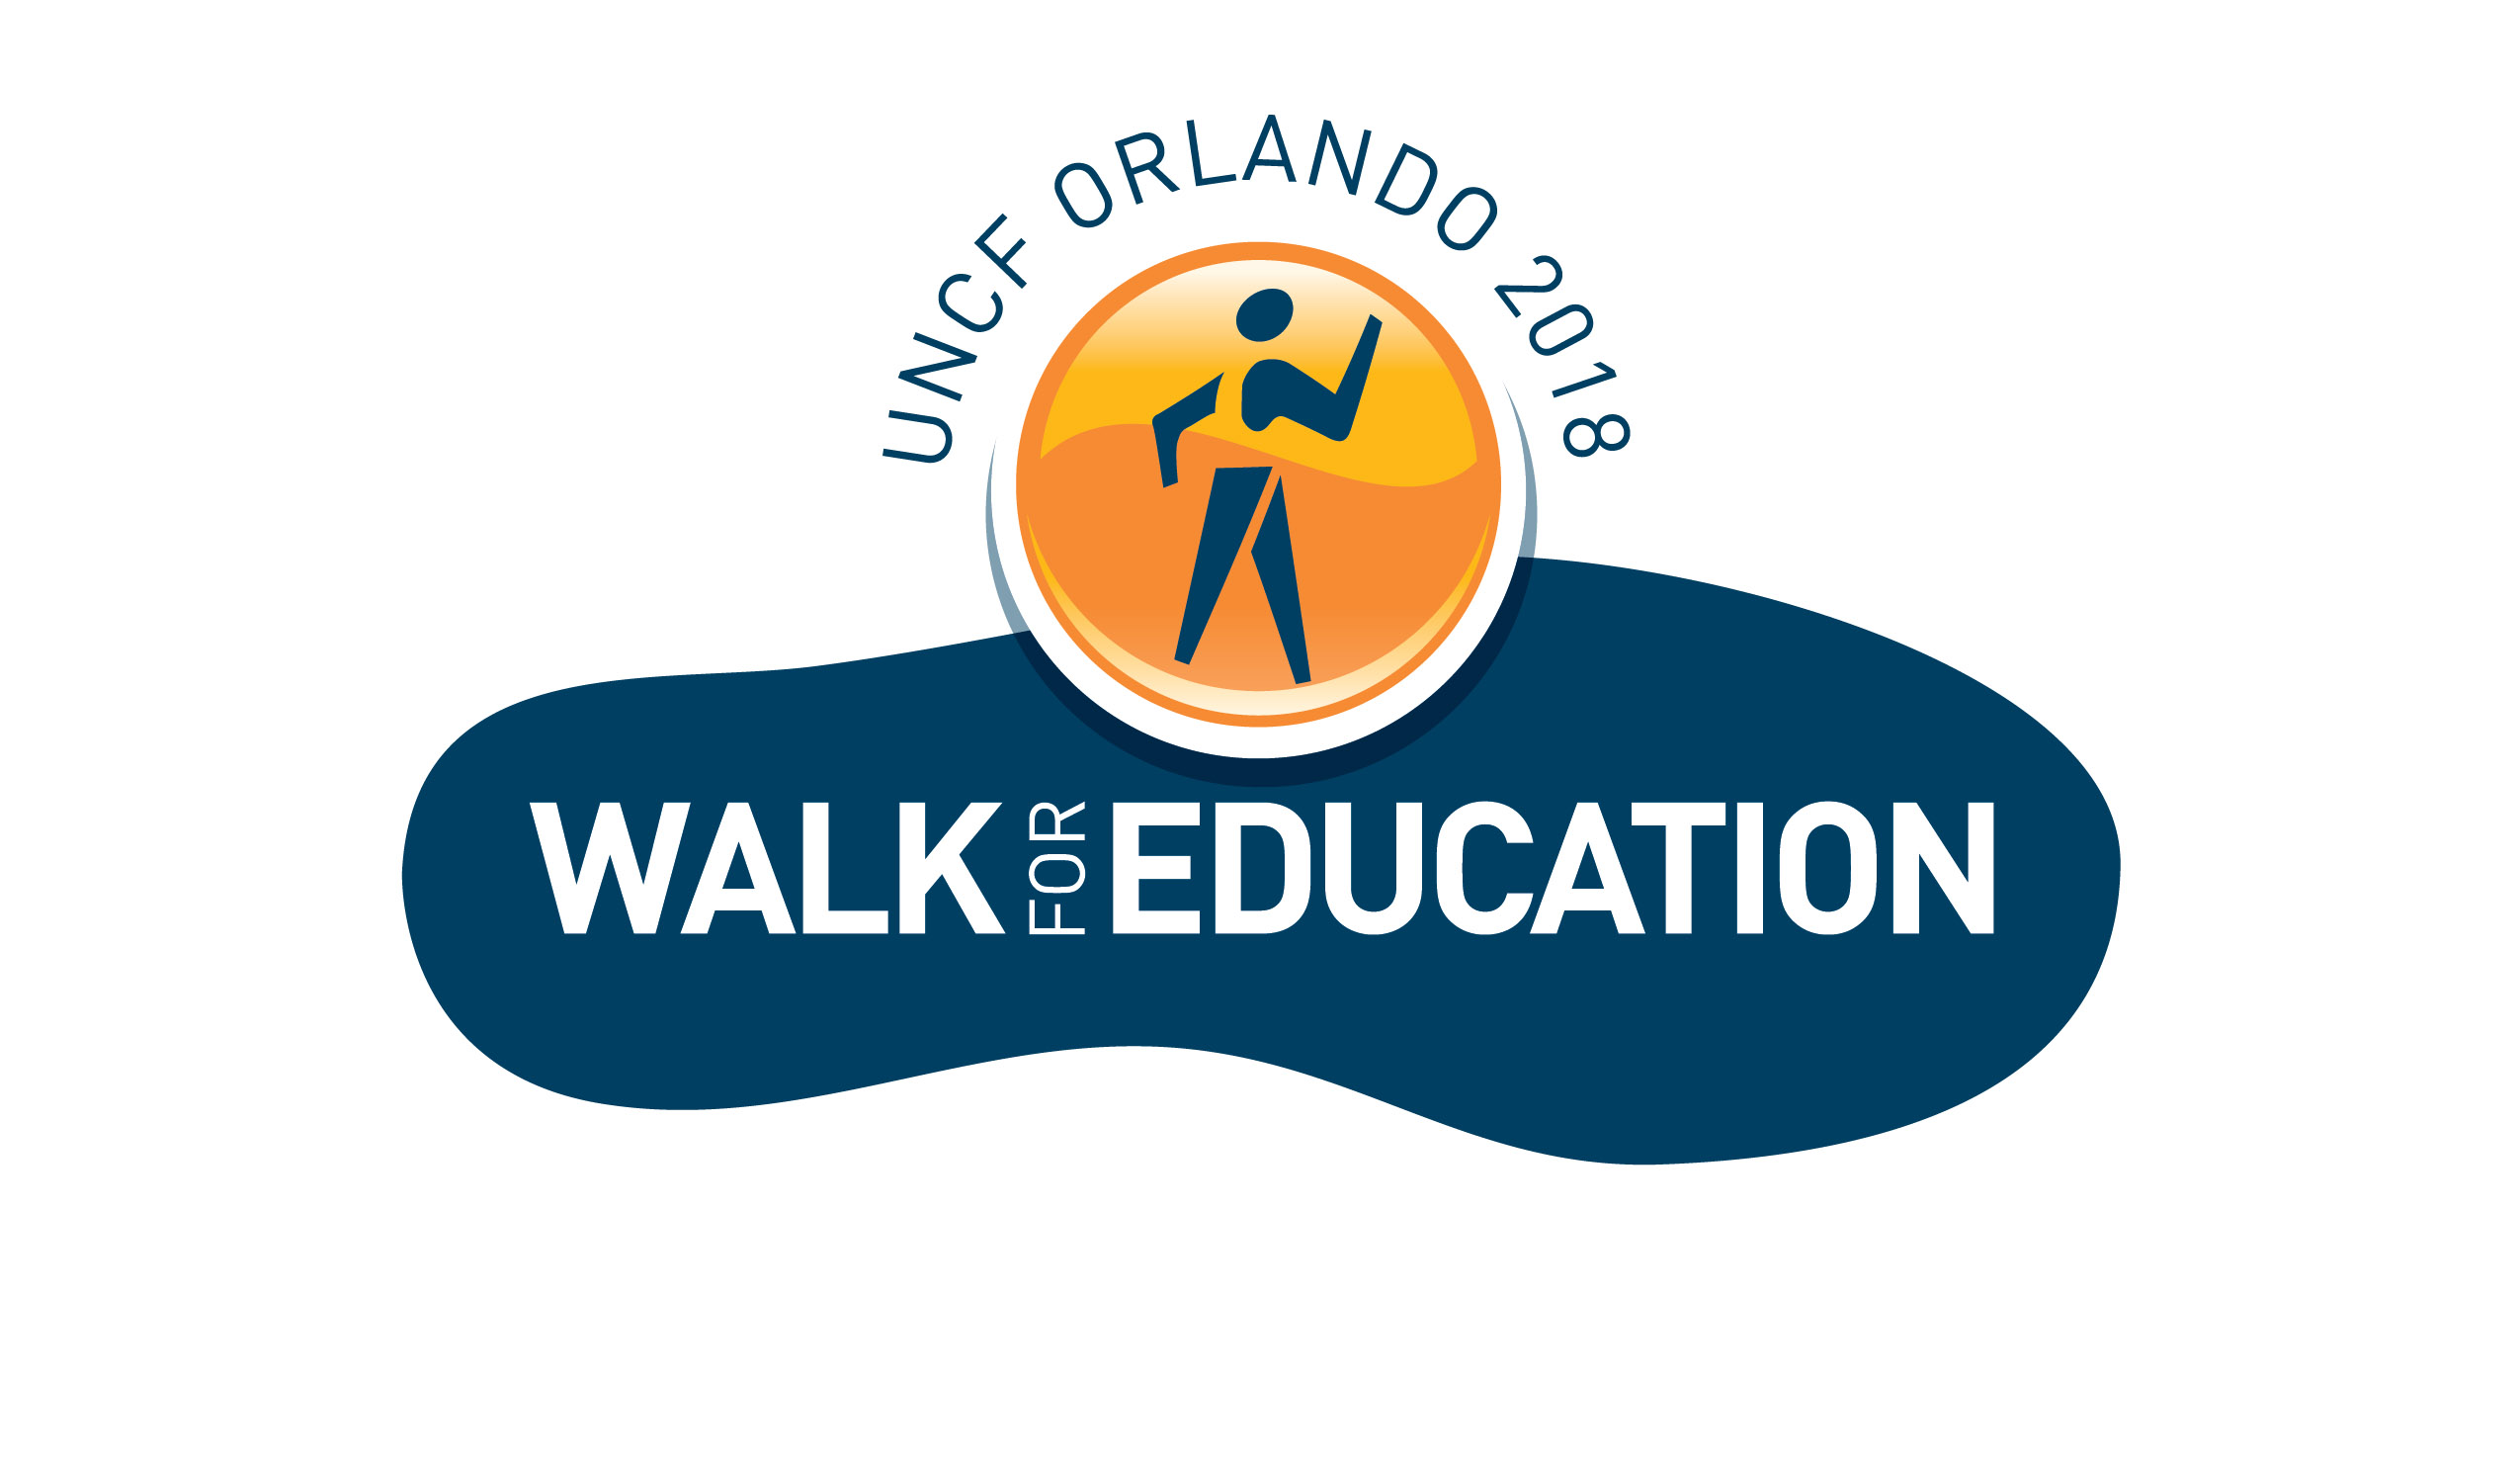 Orlando Walk for Education logo